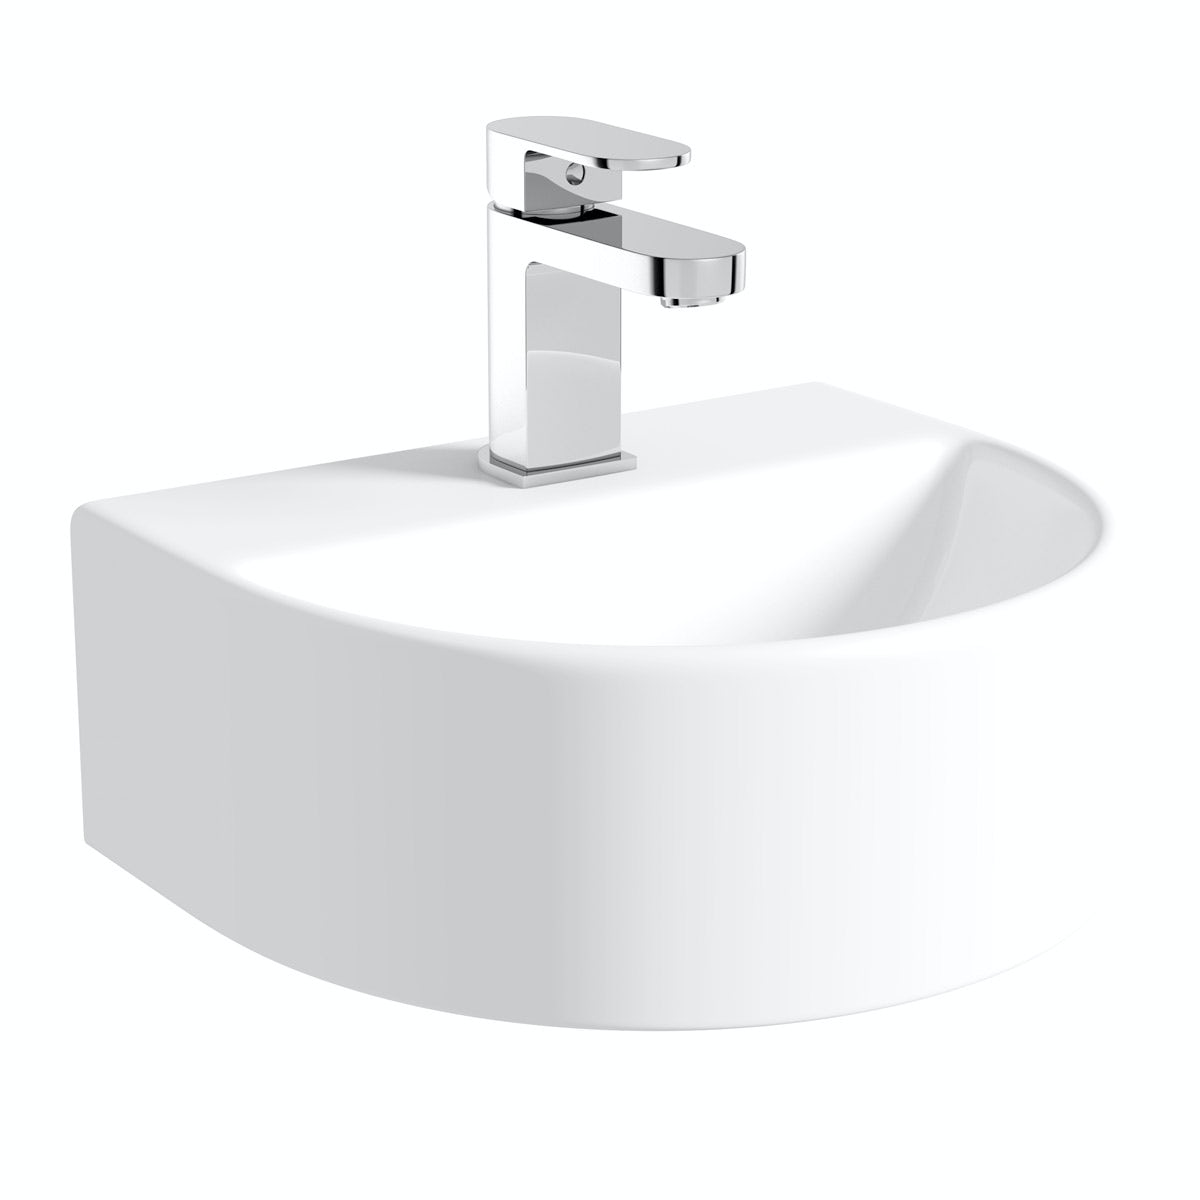 Orchard Pichola wall hung basin with waste